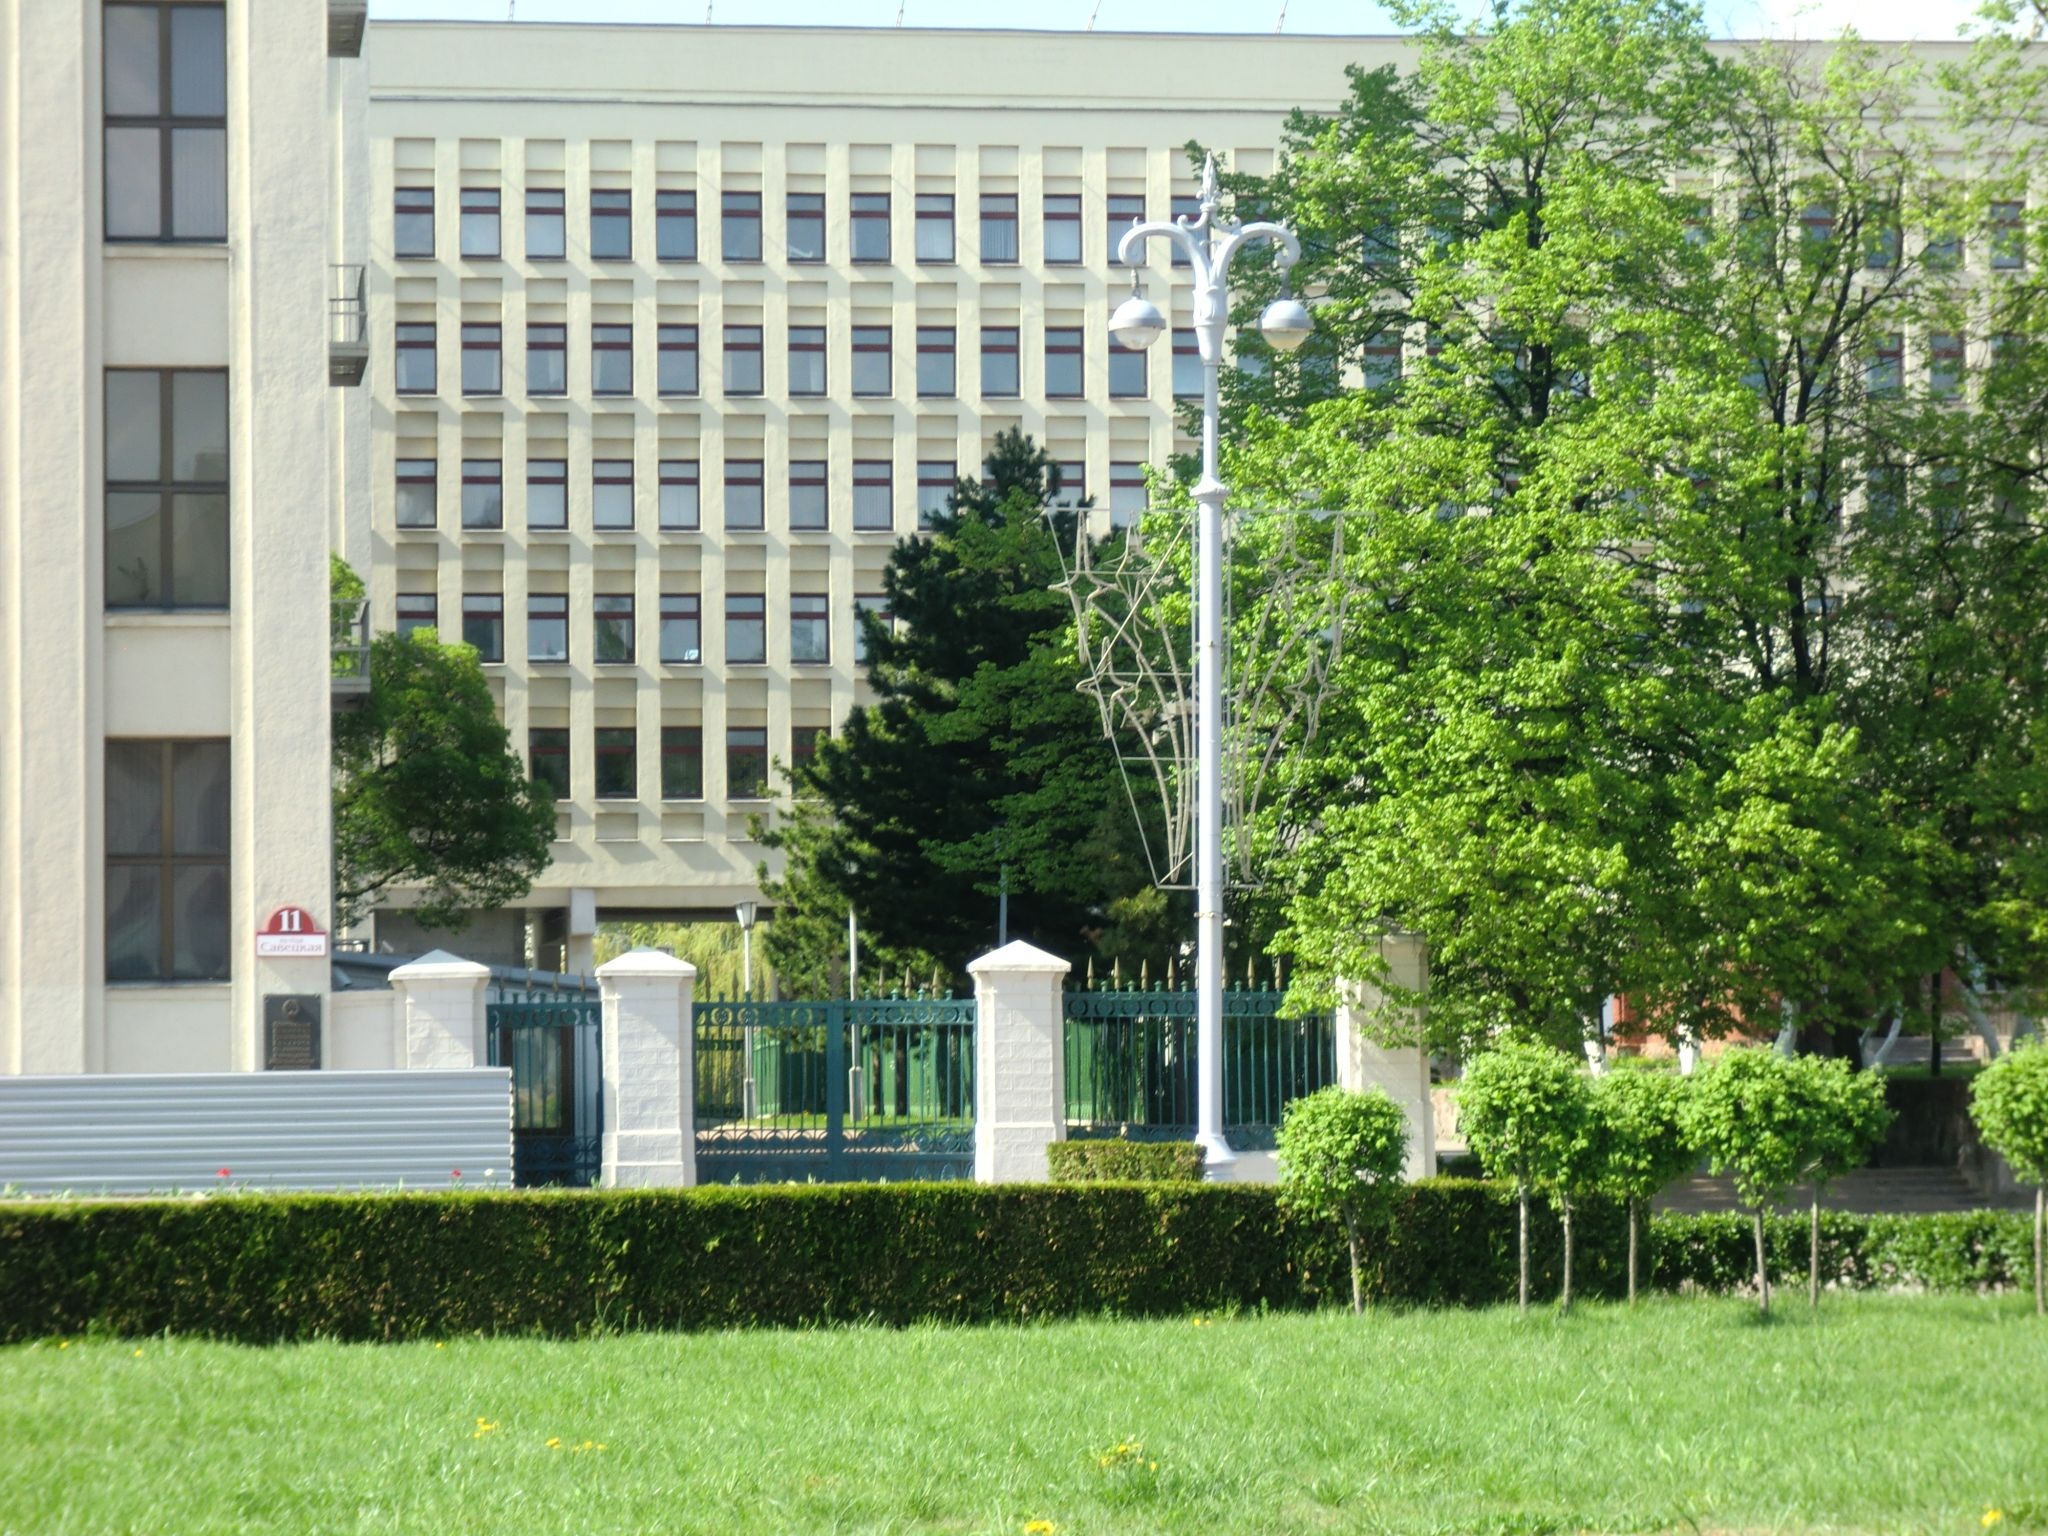 Minsk city 4 - Minsk, 1 amazing city you have to see